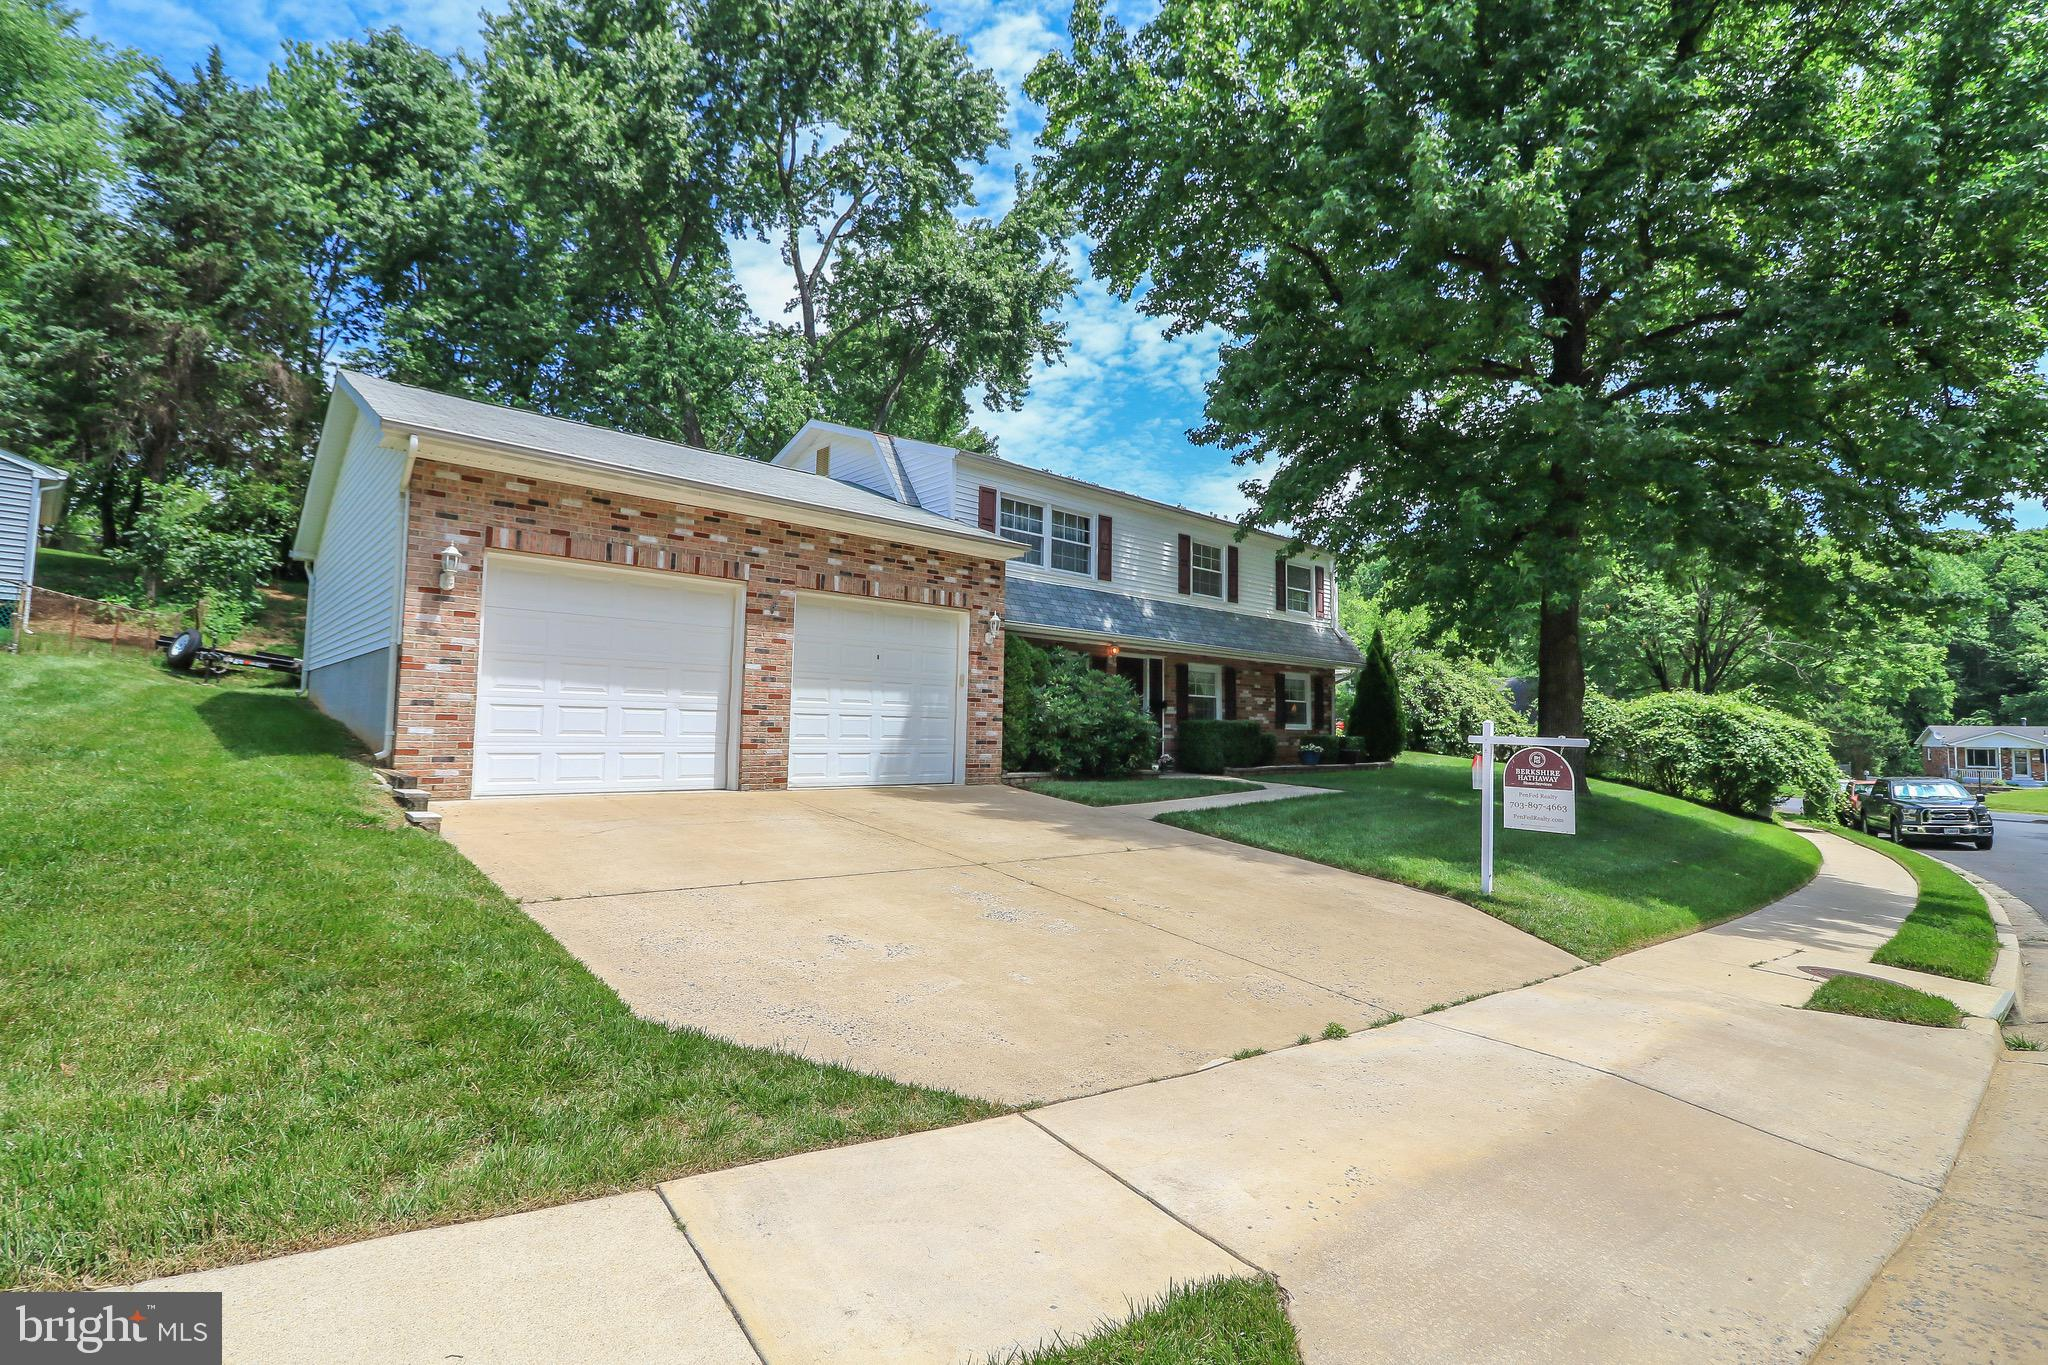 Make this first on your list to see! Over 2,100 finished square feet. Large family room and bedroom with full bath on main floor. Three bedrooms upstairs with second full bath. Large living room steps into updated kitchen with stainles appliances/granite/backsplash. Extension off kitchen for formal dining room. Laundry located off kitchen in large mud room with pantry/storage, steps out to covered deck and pool. Attached large 2 car garage (26X23) with vaulted ceilings has room for a lift. Minutes to shopping/Potomac Mills/Stone Bridge at Potomac Town Center/I-95/Quantico/Ft Belvoir/VRE